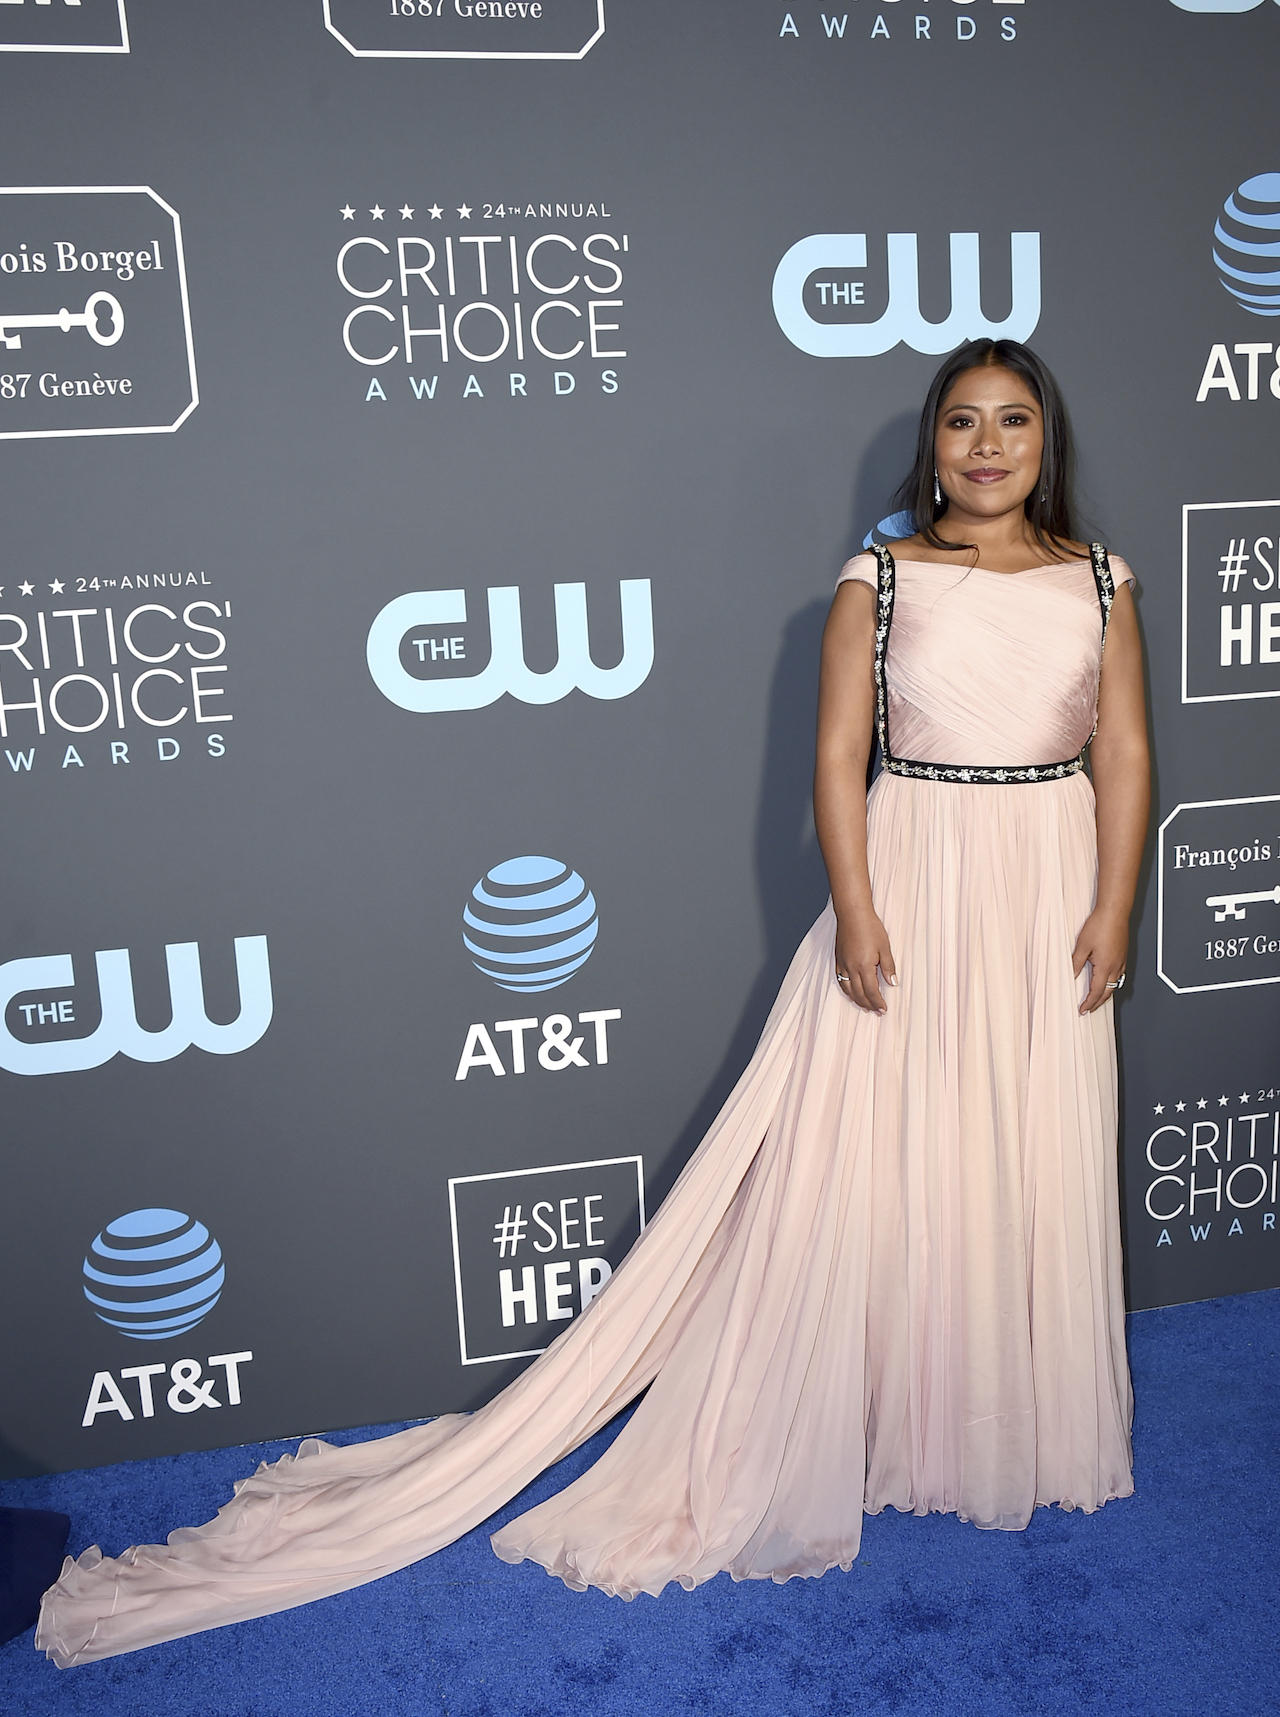 "<div class=""meta image-caption""><div class=""origin-logo origin-image ap""><span>AP</span></div><span class=""caption-text"">Yalitza Aparicio arrives at the 24th annual Critics' Choice Awards on Sunday, Jan. 13, 2019, at the Barker Hangar in Santa Monica, Calif. (Jordan Strauss/Invision/AP)</span></div>"